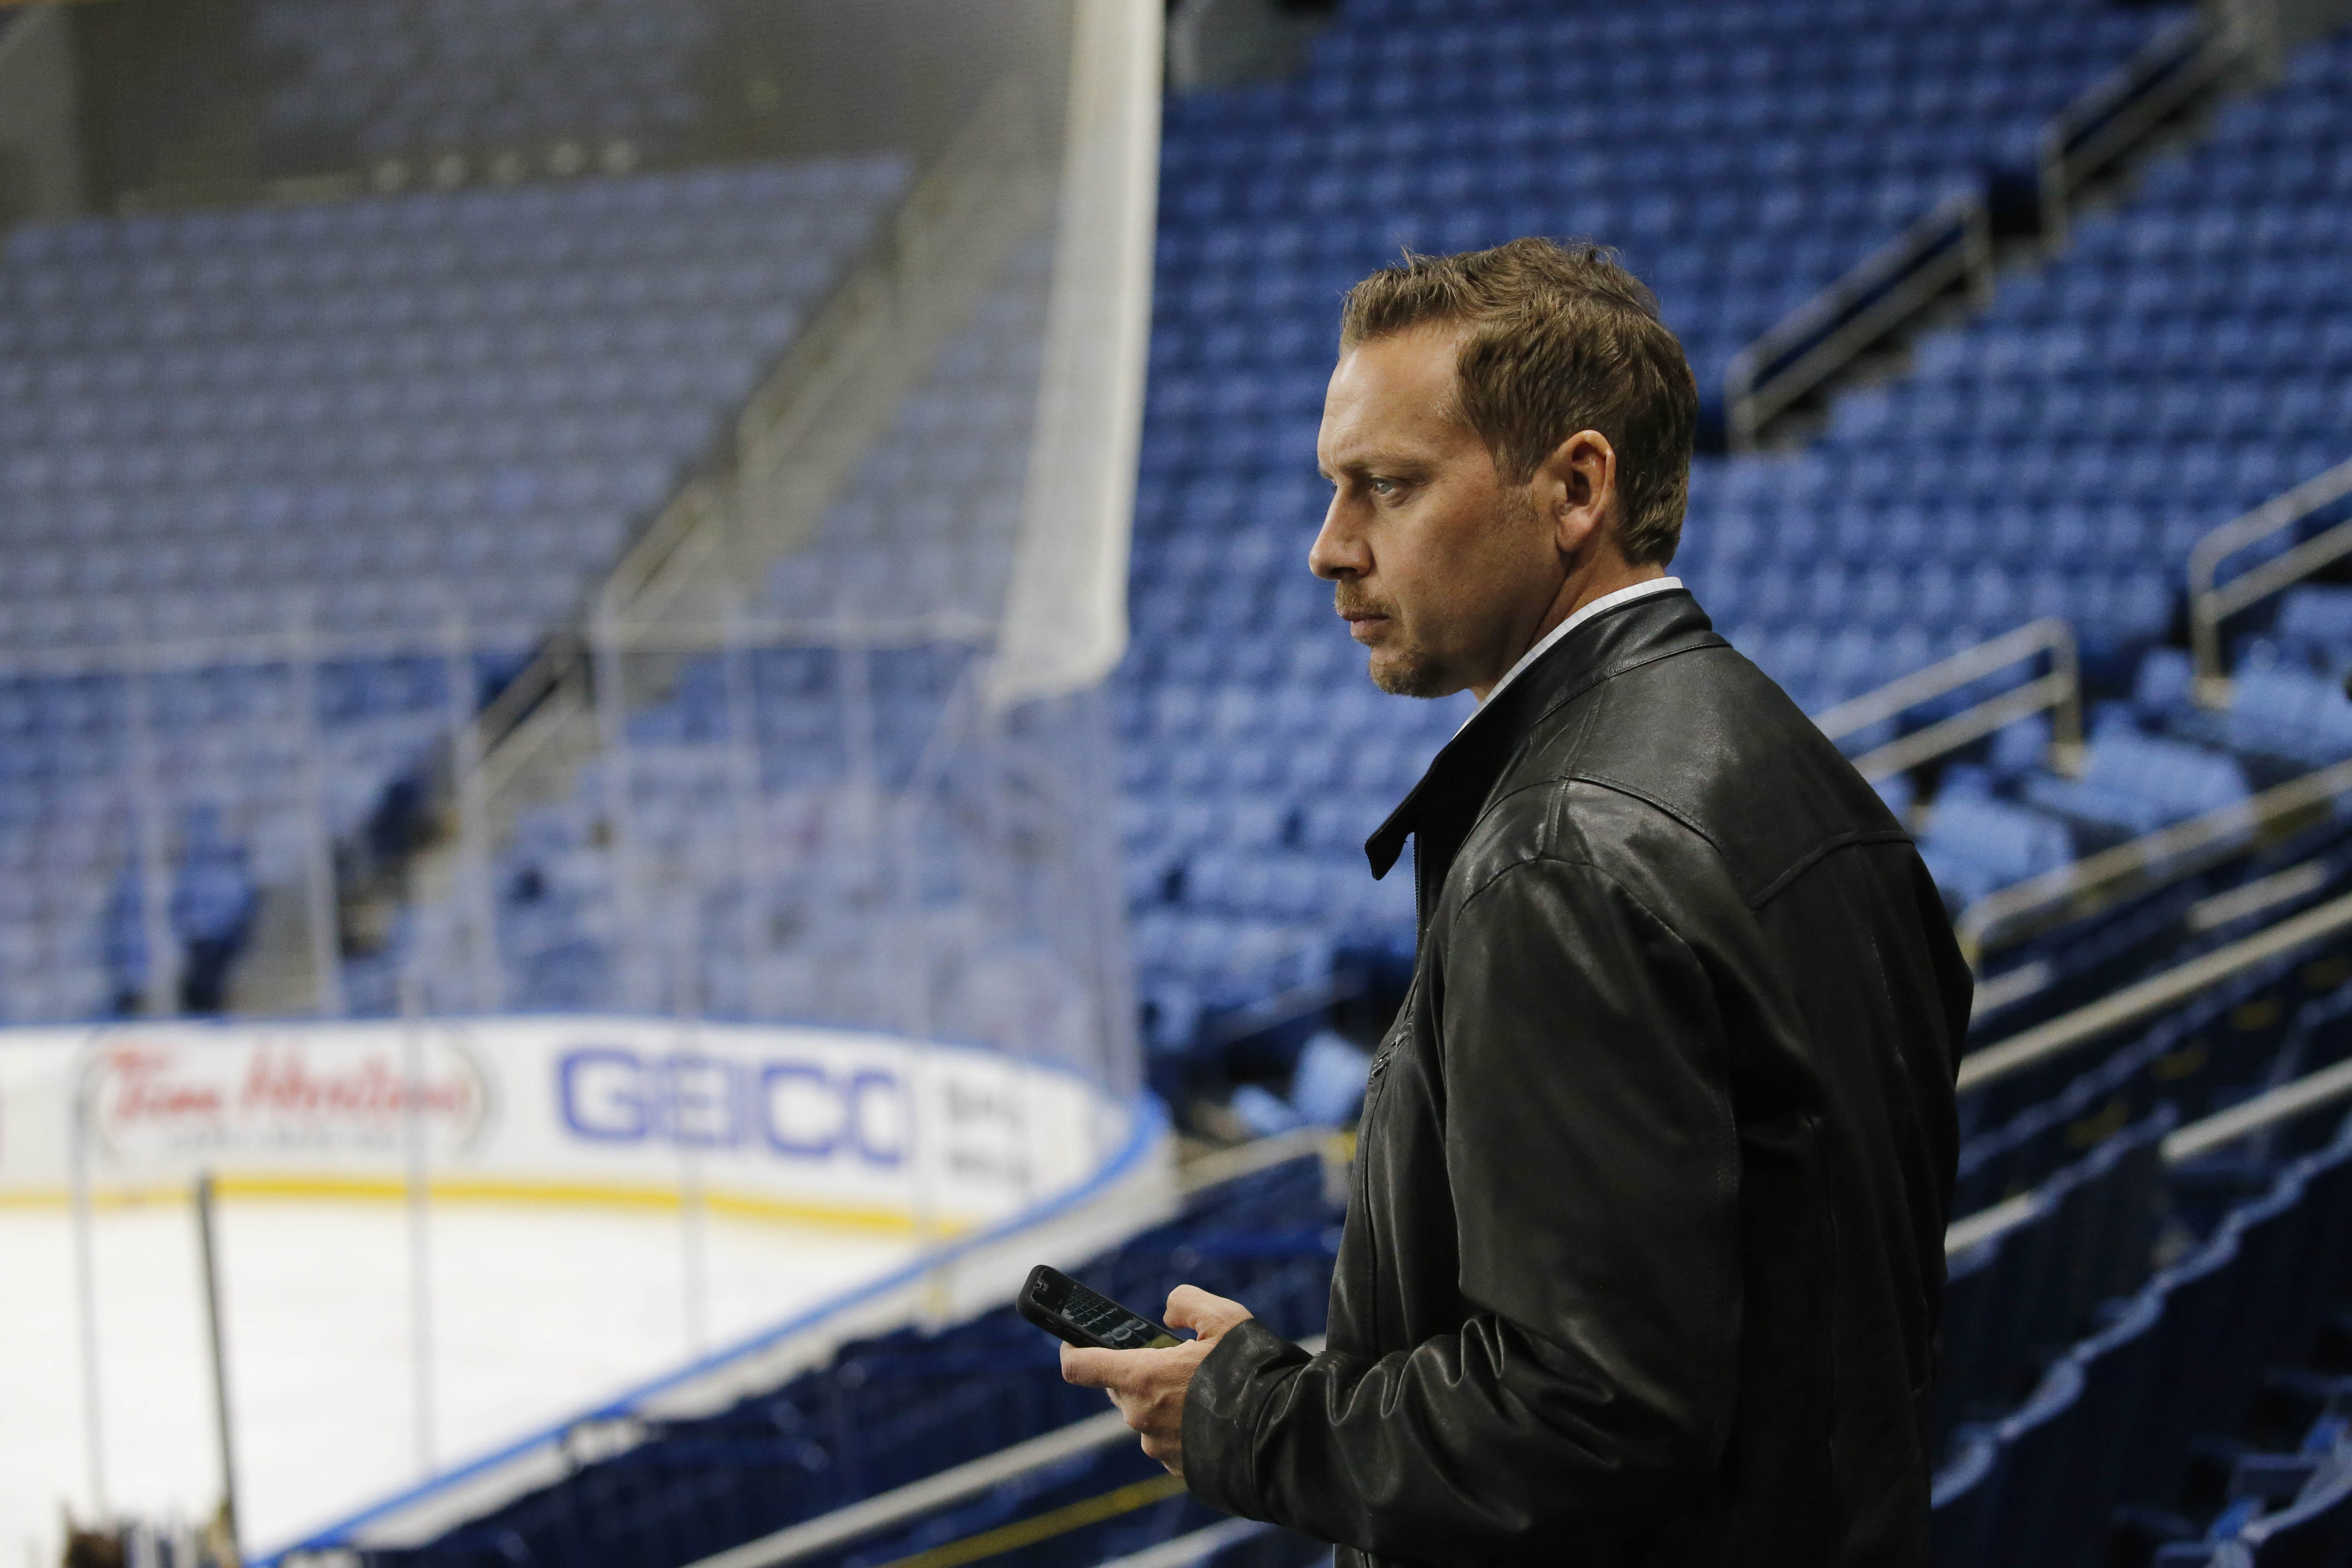 Sportscaster Adam Benigni of WGRZ is back to work covering the Buffalo Sabres at KeyBank Center. (Derek Gee/Buffalo News)